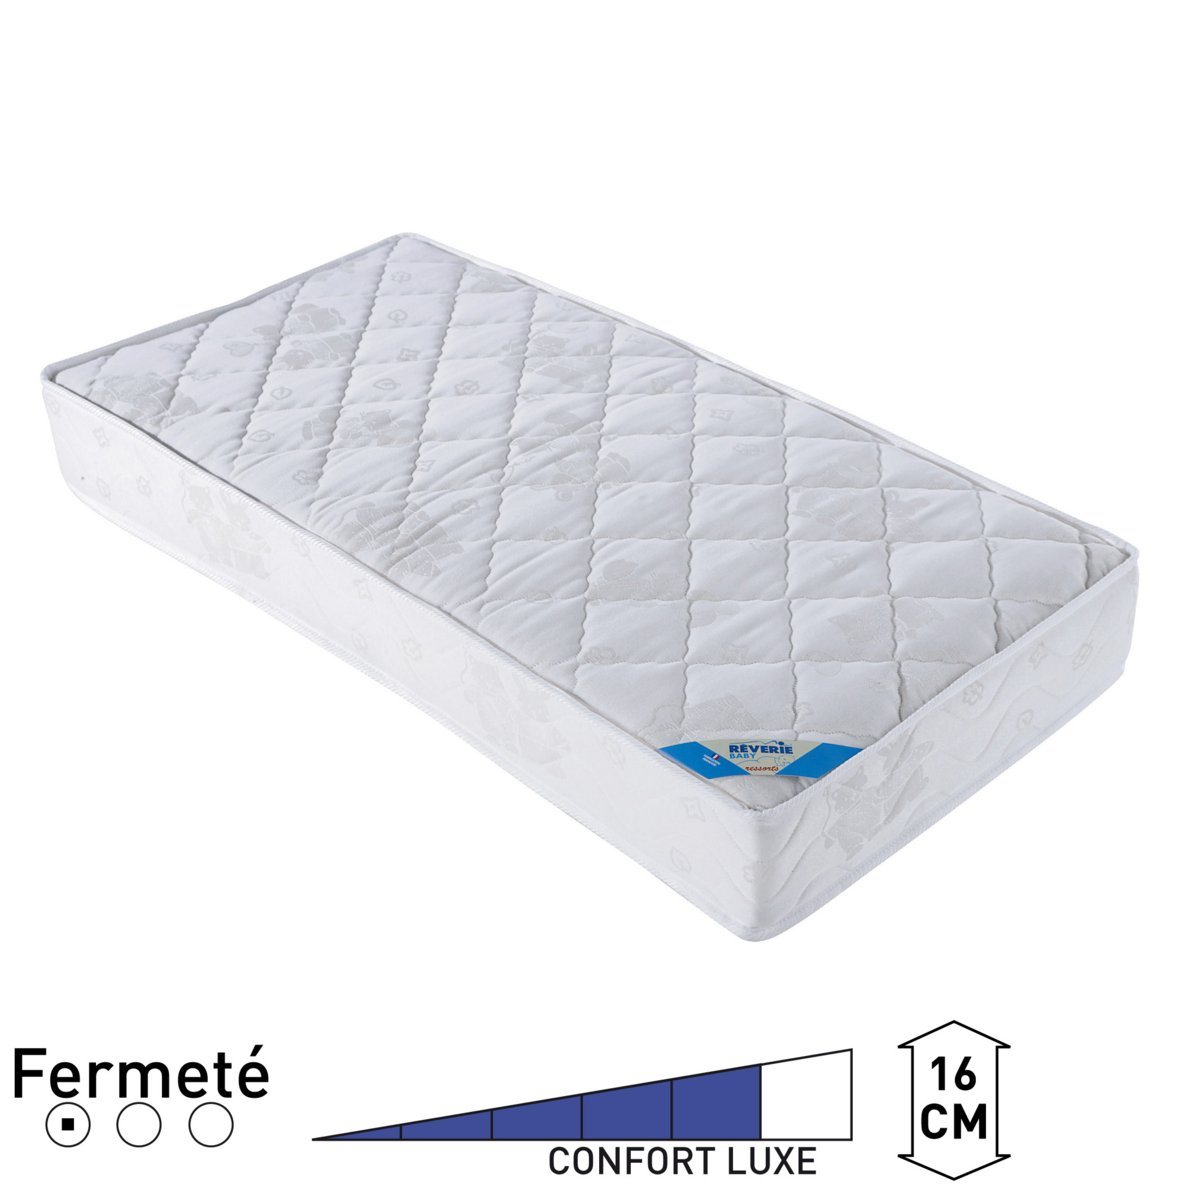 dimension matelas bb trendy dimension matelas lit double with dimension matelas bb taille. Black Bedroom Furniture Sets. Home Design Ideas